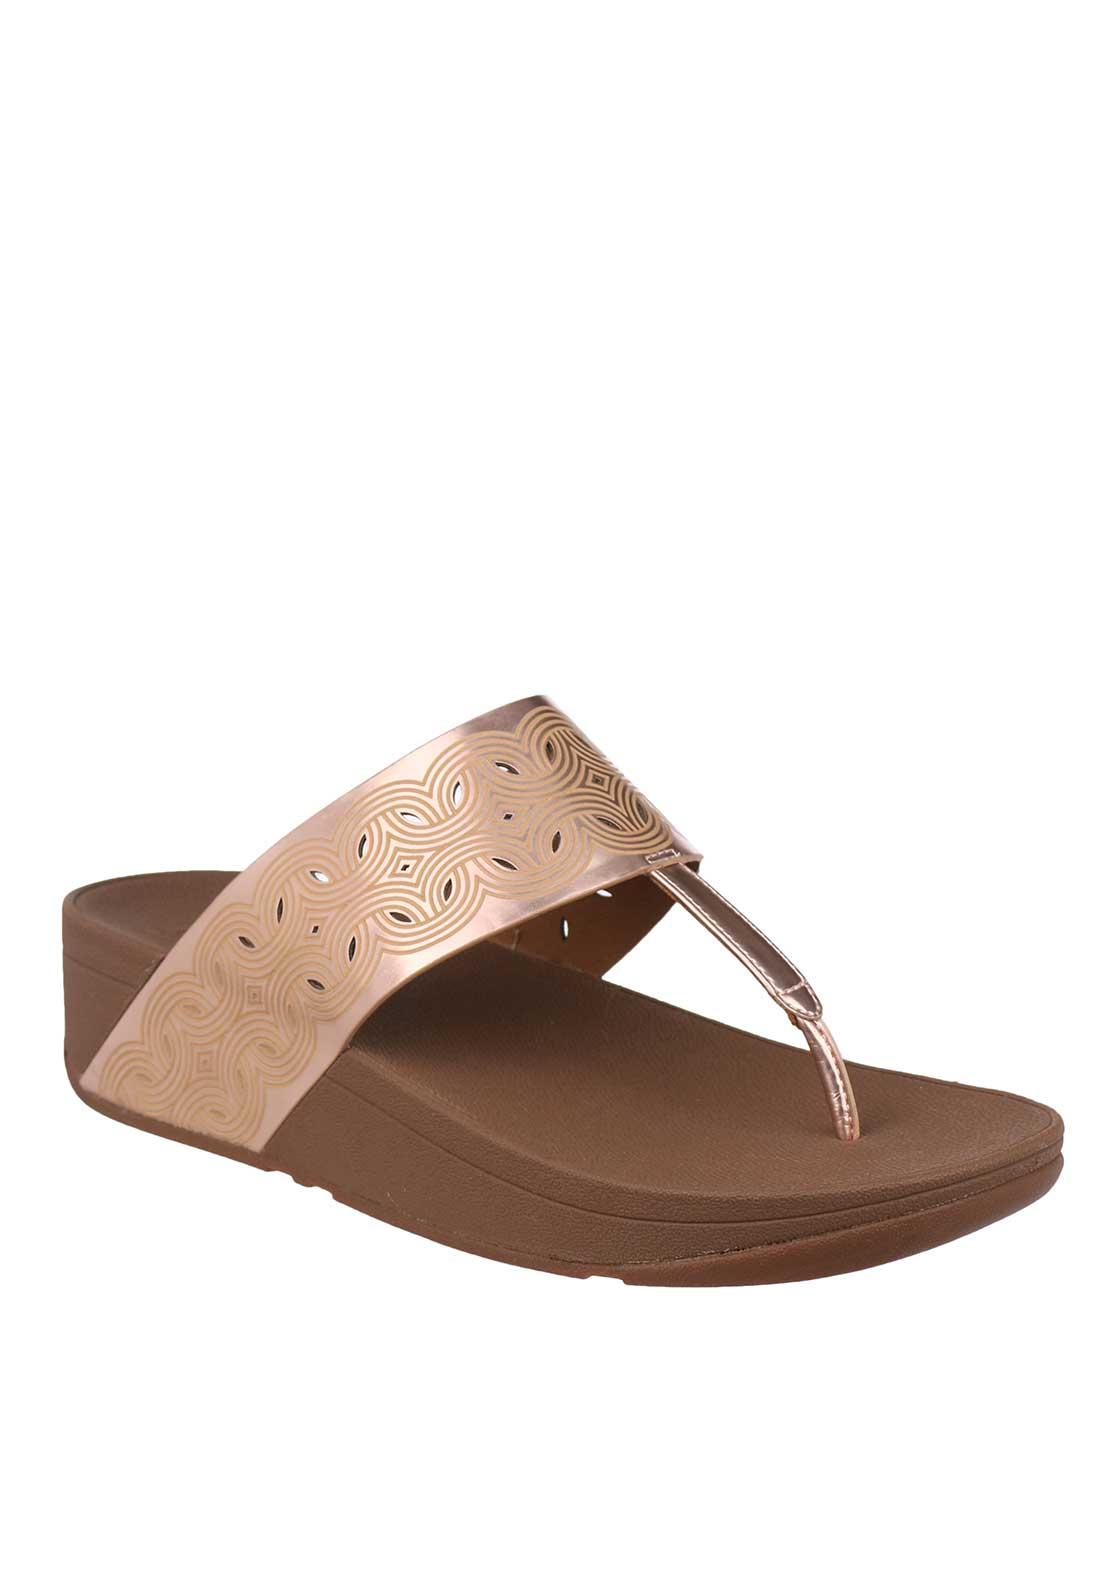 Fit Flop™ Bahia™ IMI Leather Toe Thong Sandals, Rose Gold